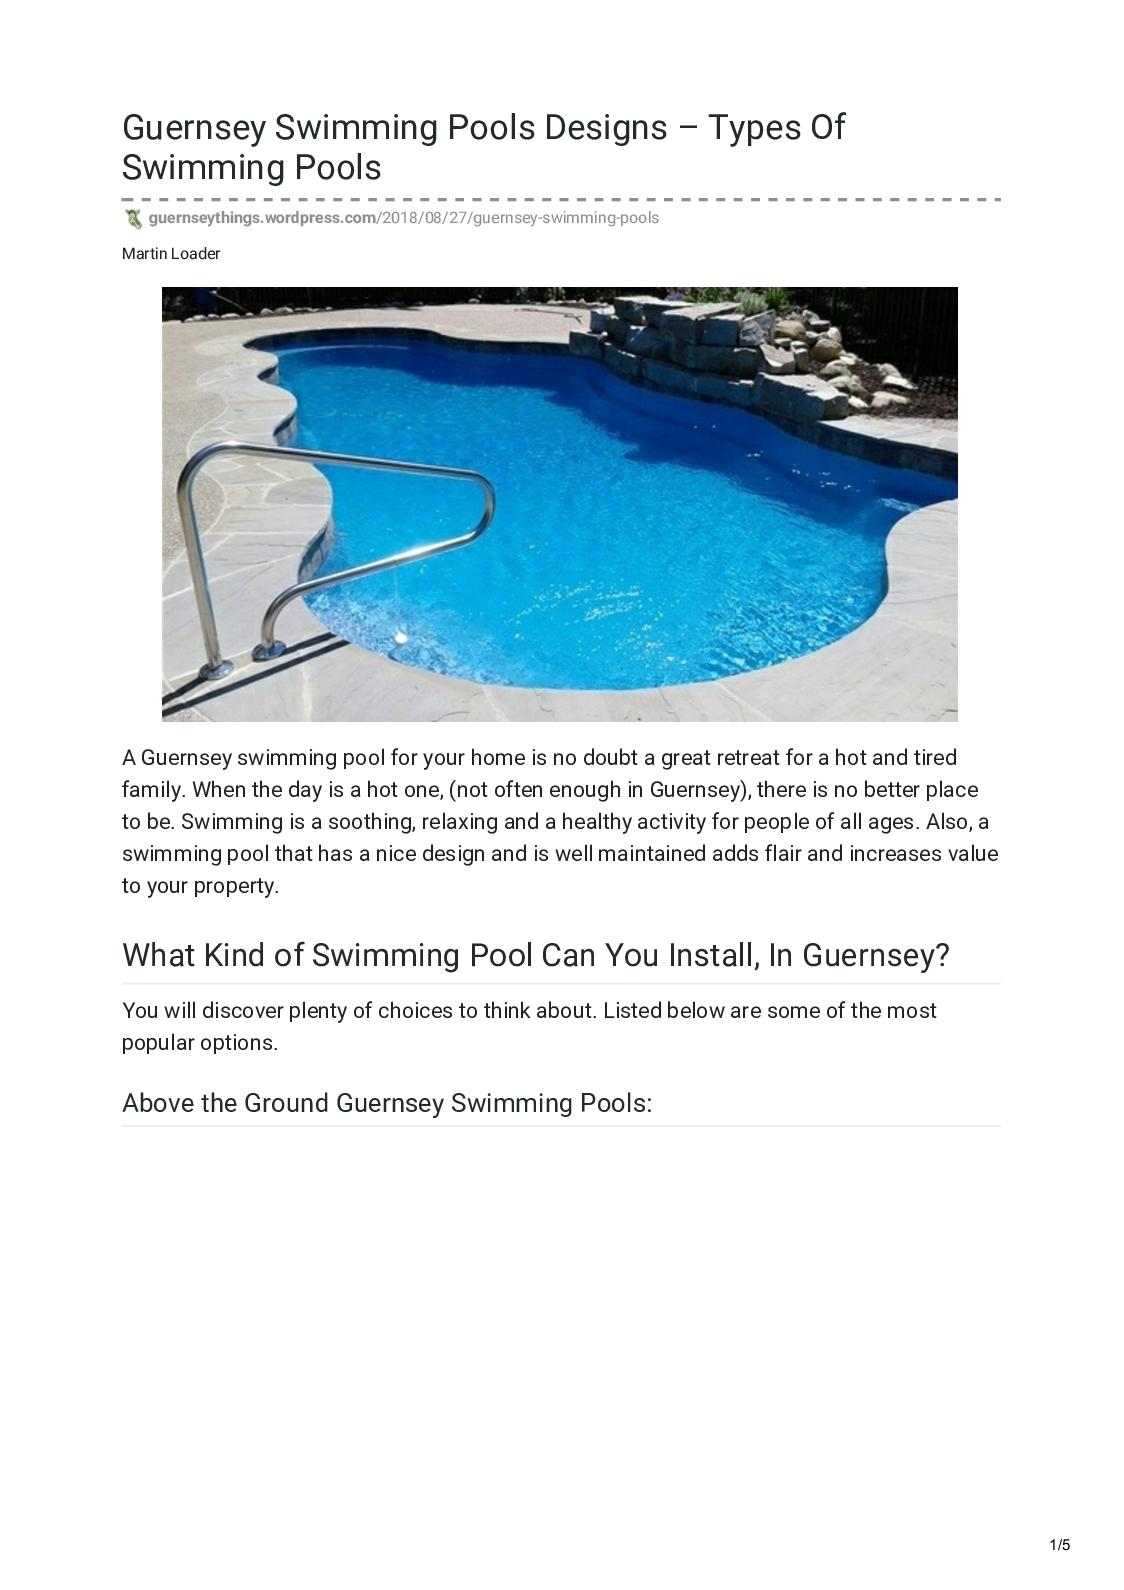 Calaméo - Guernsey Swimming Pools Designs Types